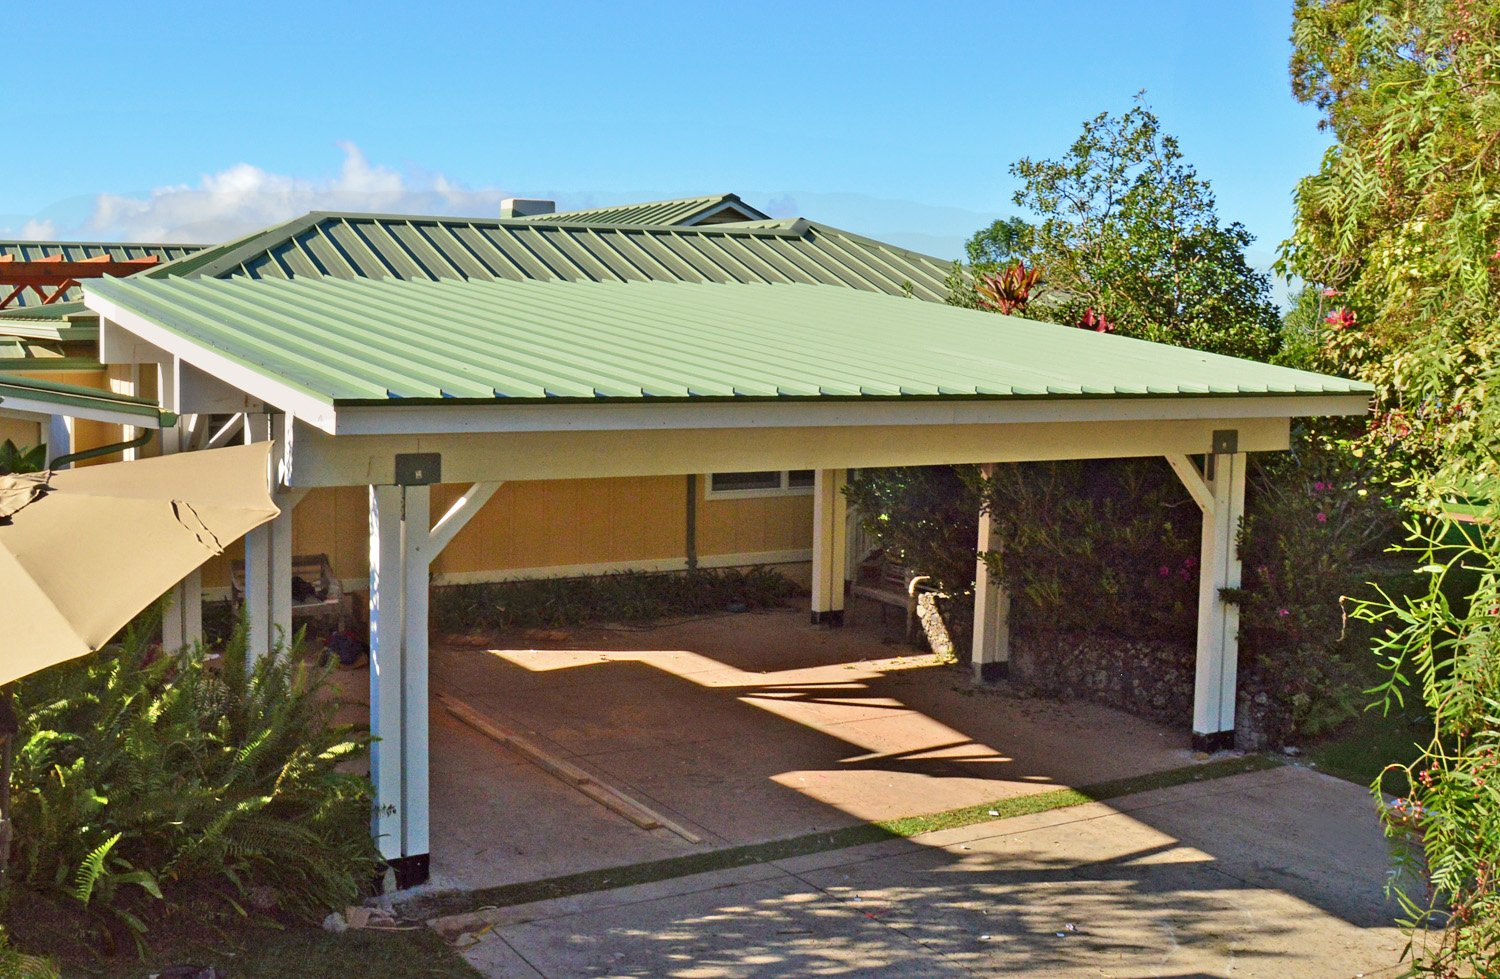 The roofing of this Carport Pavilion was selected to match the existing roofing of the home.